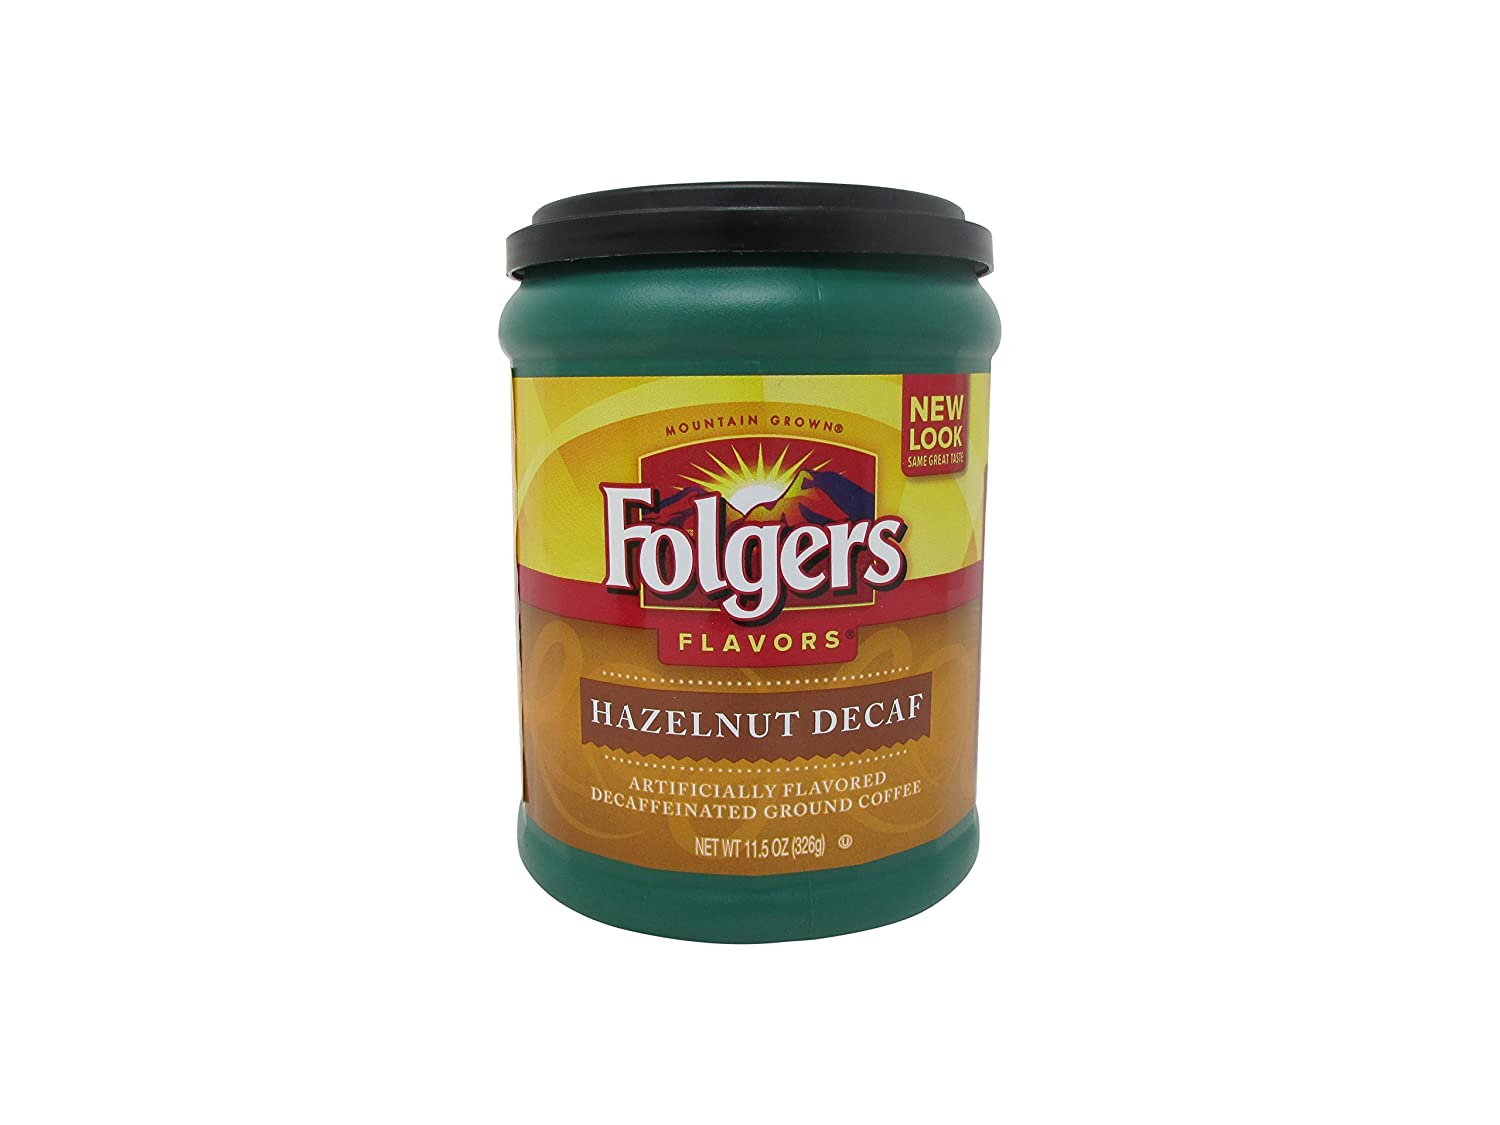 B001FA1KBC Folgers Flavors Hazelnut Decaffeinated Ground Coffee, 11.5-Ounce Tubs (Pack of 6) 81riThapB9L